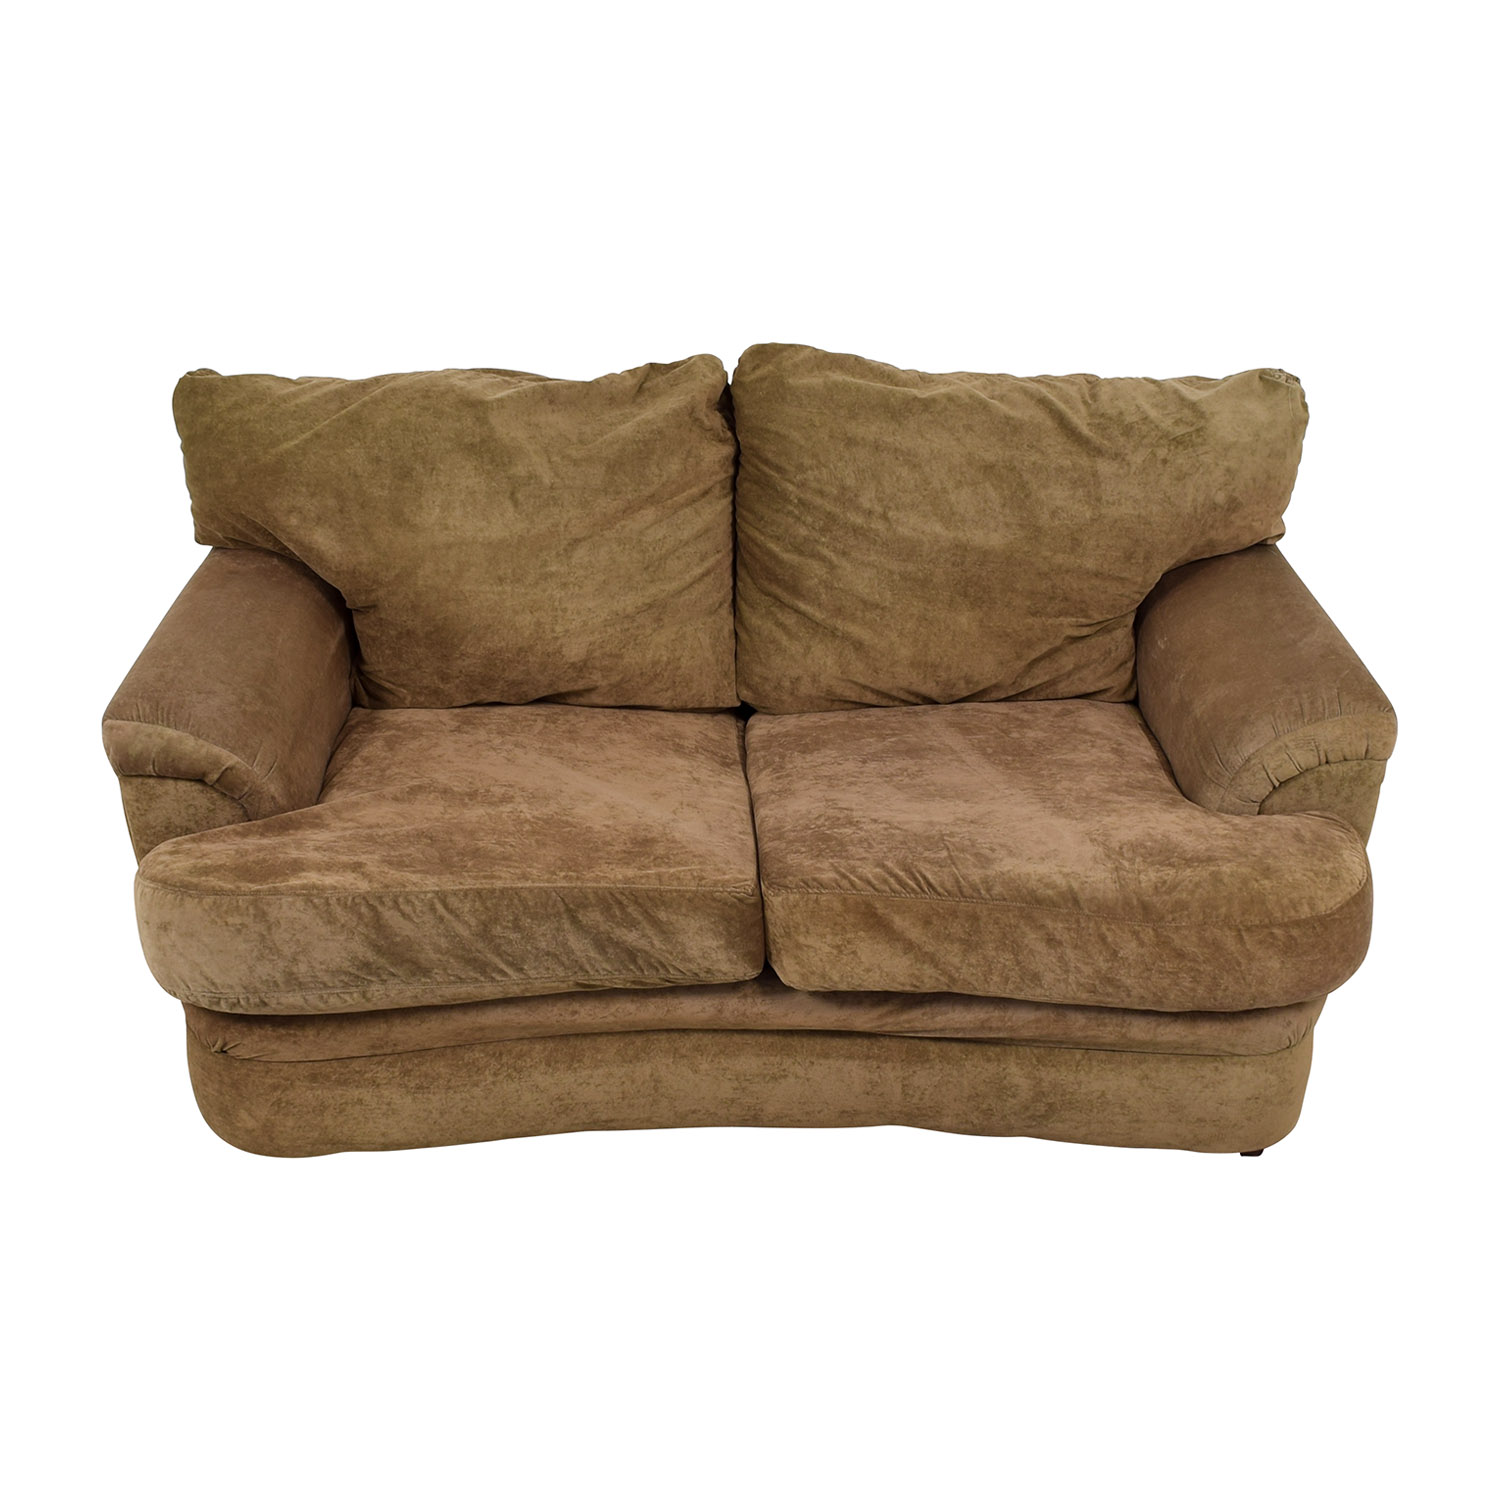 Alan White Alan White Loveseat nyc